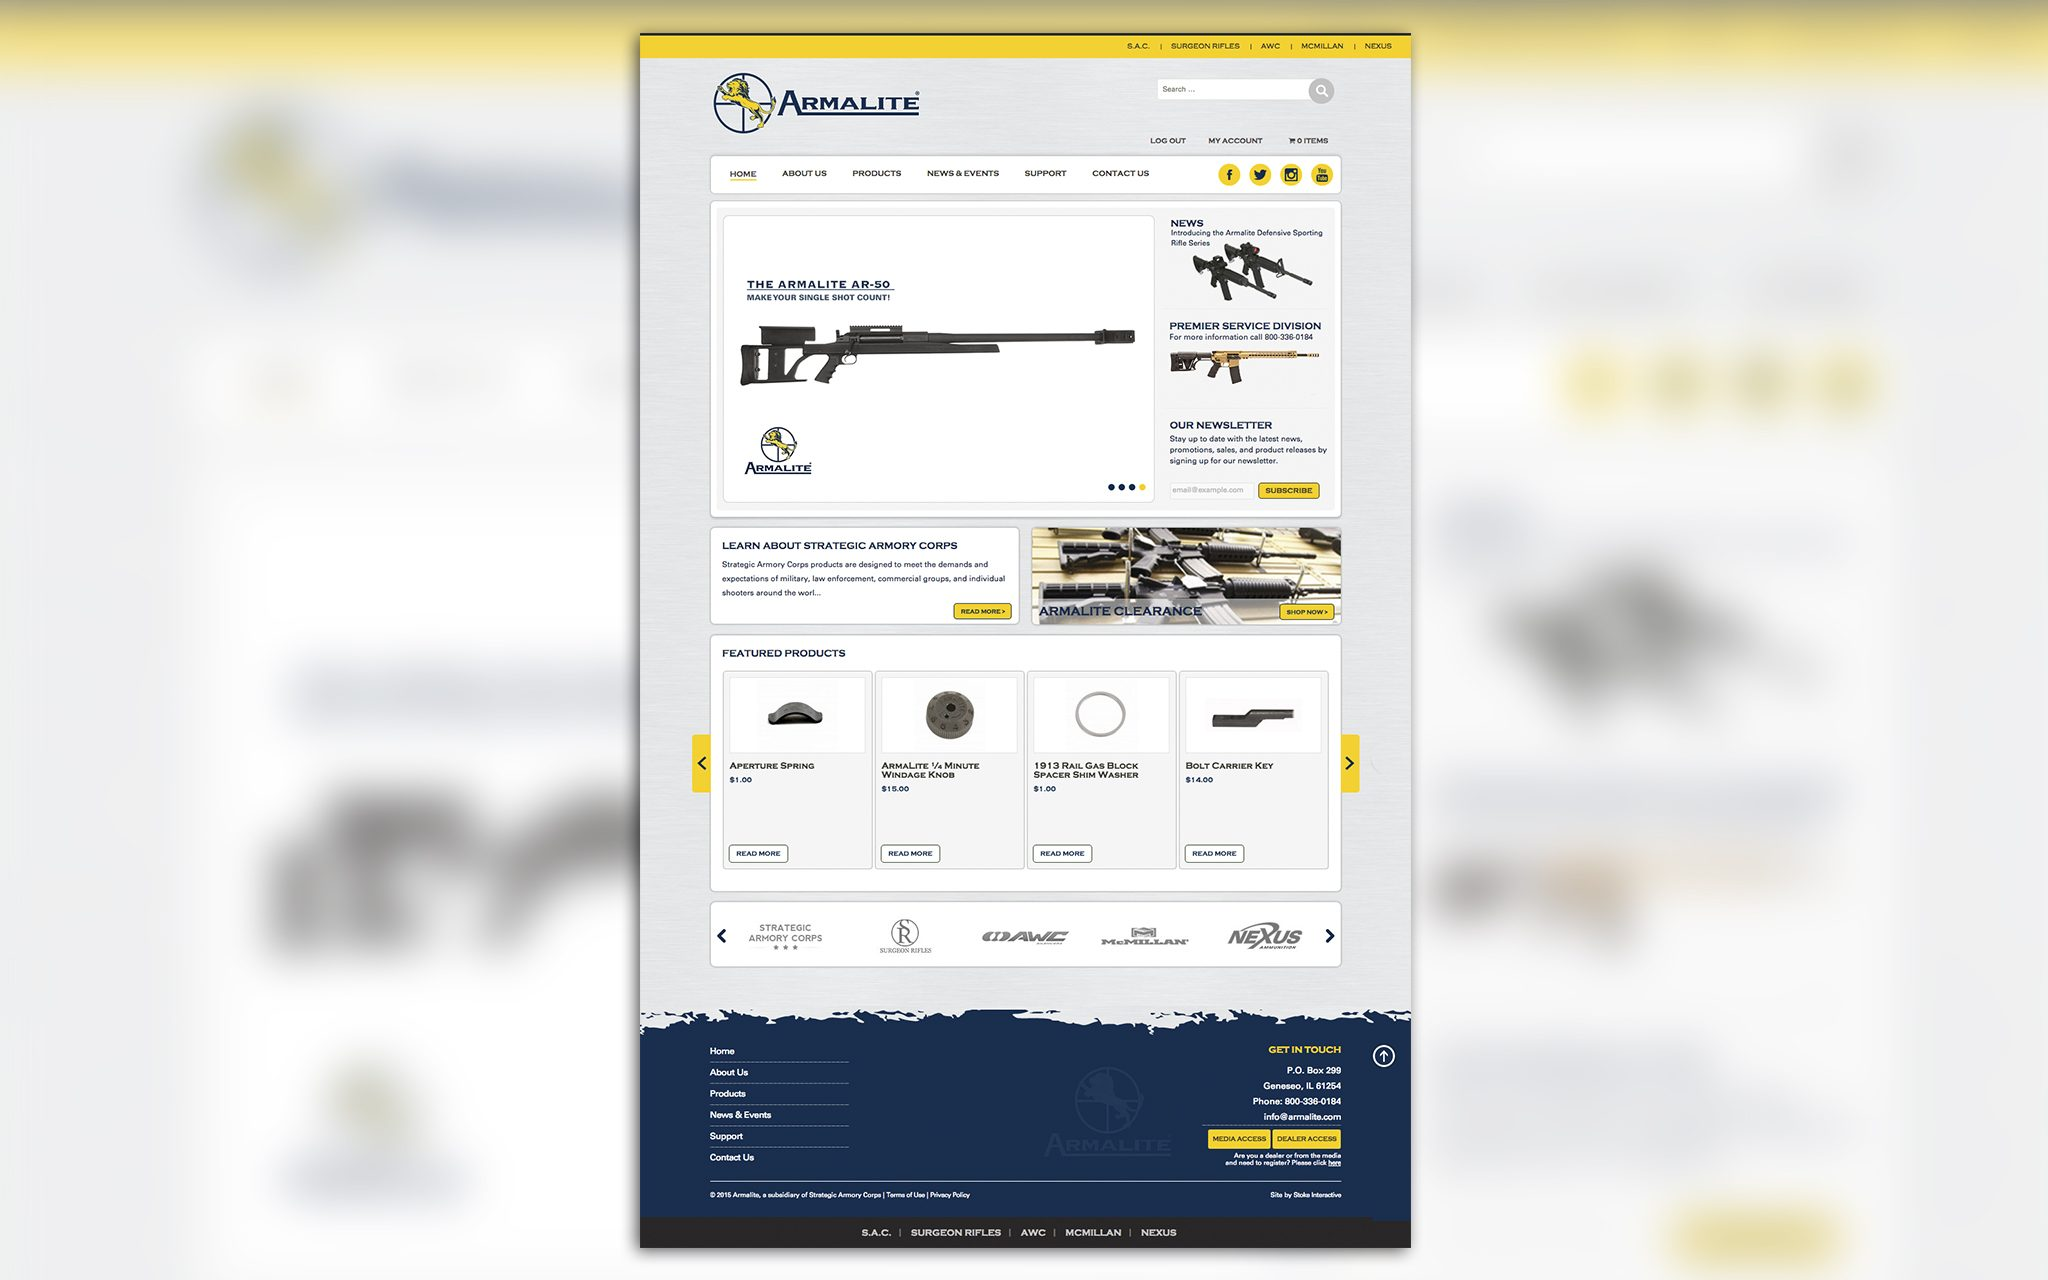 armalite homepage redesign